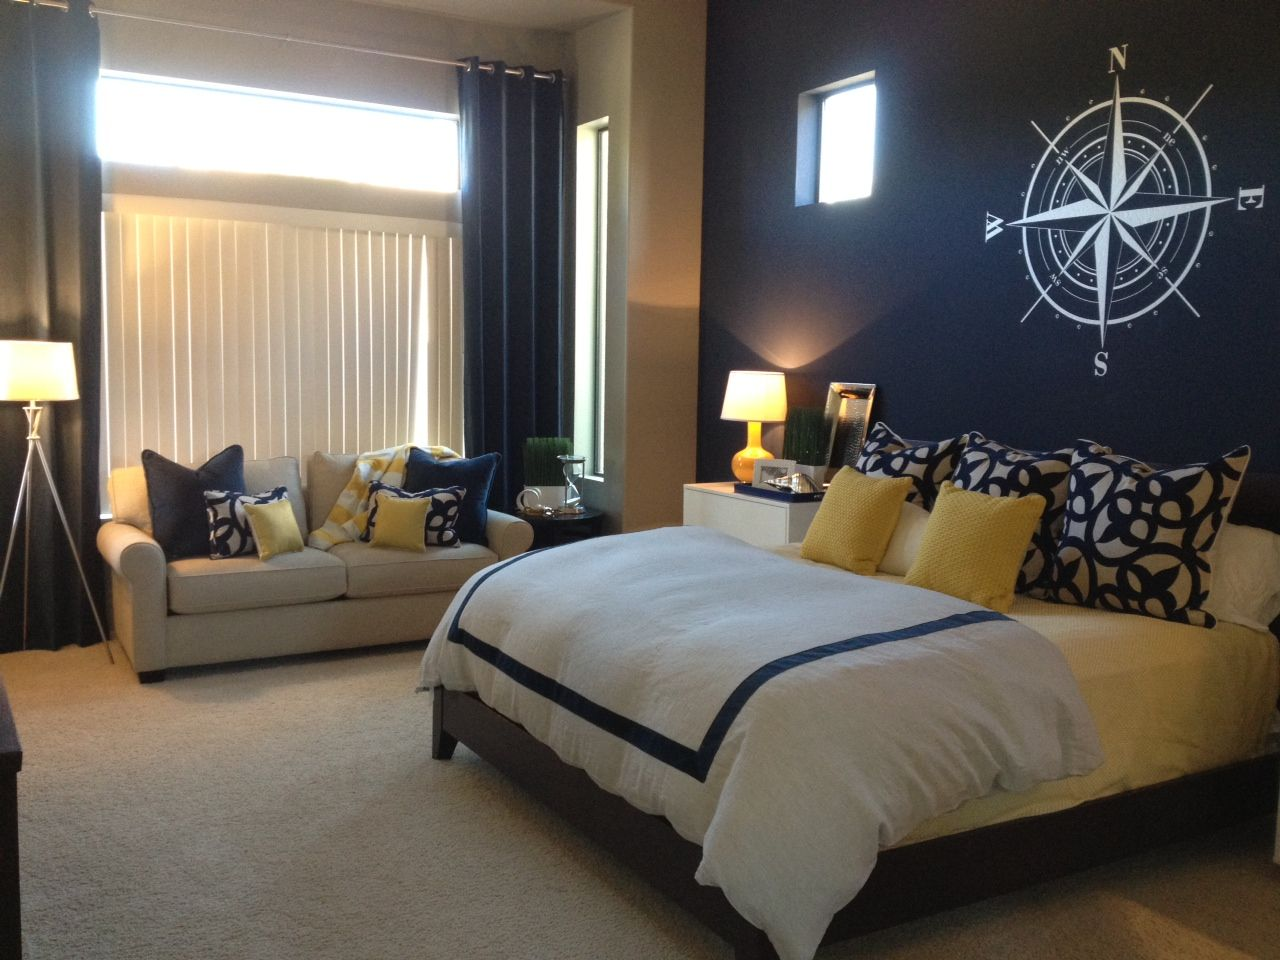 Bedroom Nautical Bedroom Decor The Magnificent Rooms That Look Luxurious  With Nautical Decor Equipped With Sofas